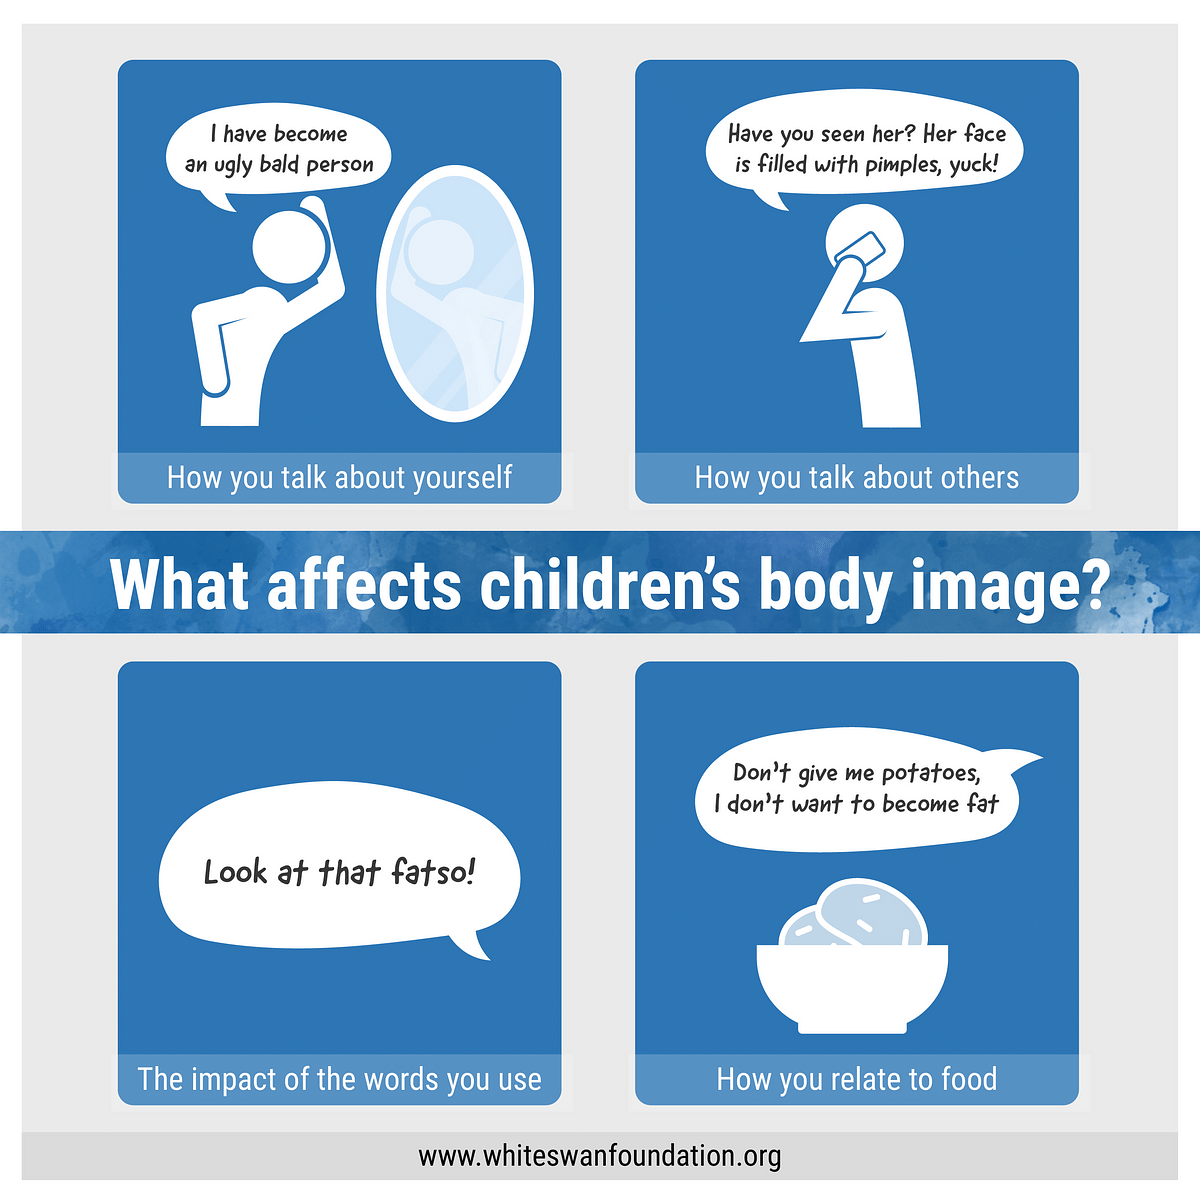 What affects children's body image?